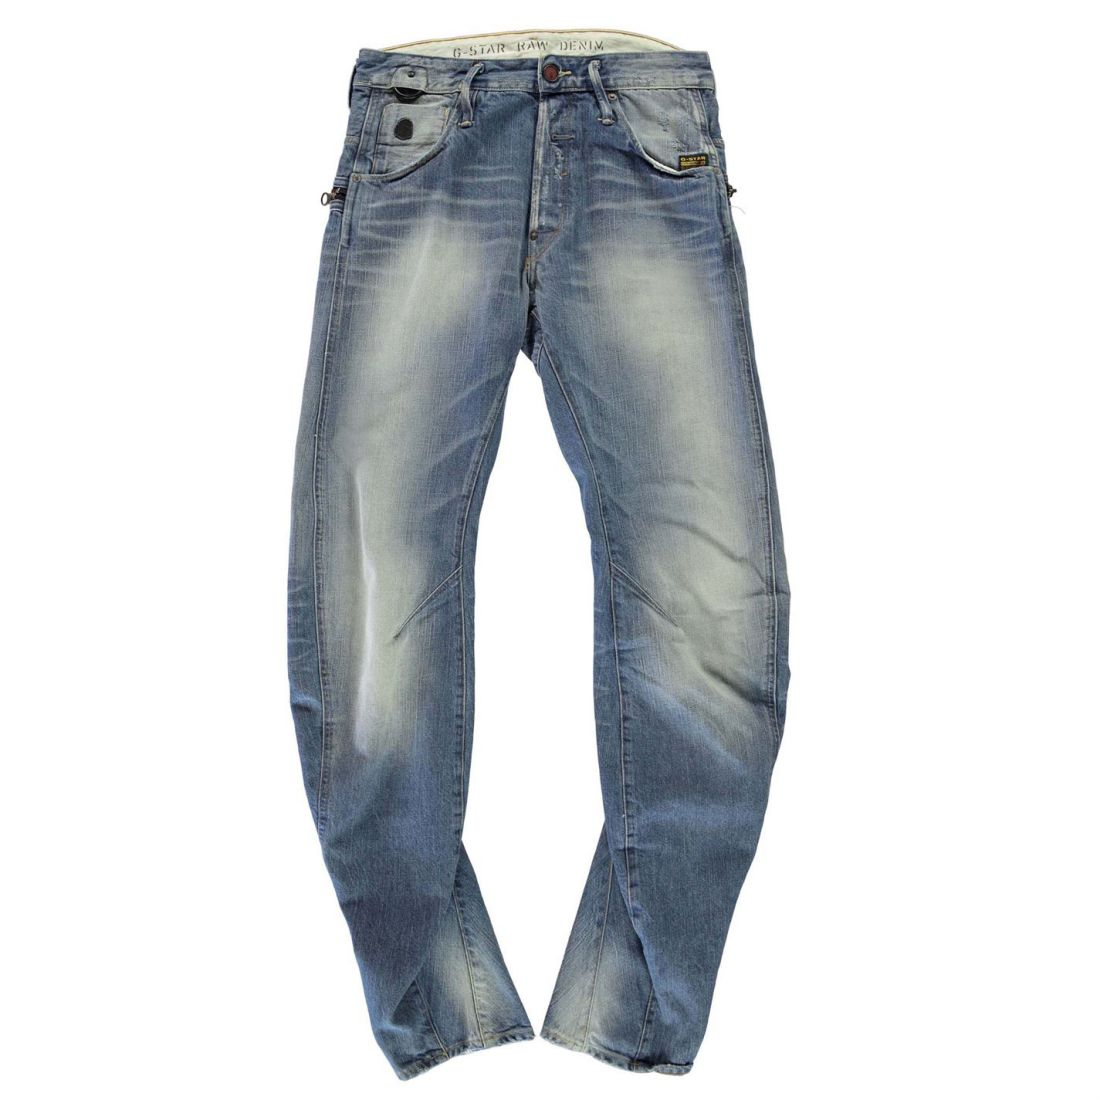 5d2925ce470 Details about G Star Mens Raw New Riley 3D Loose Tapered Jeans Straight  Pants Trousers Bottoms